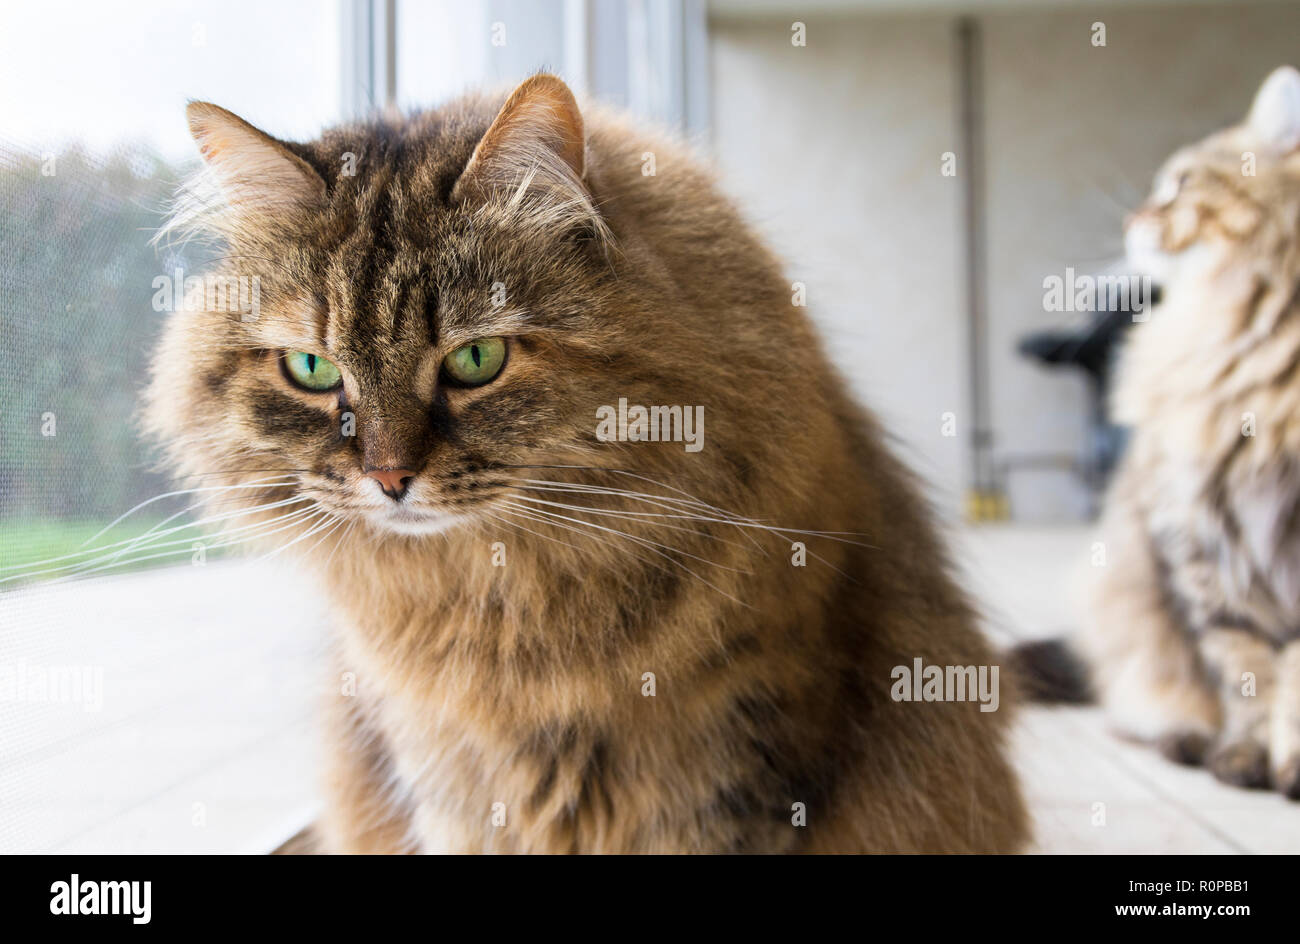 Funny cat at the window, curious pet - Stock Image